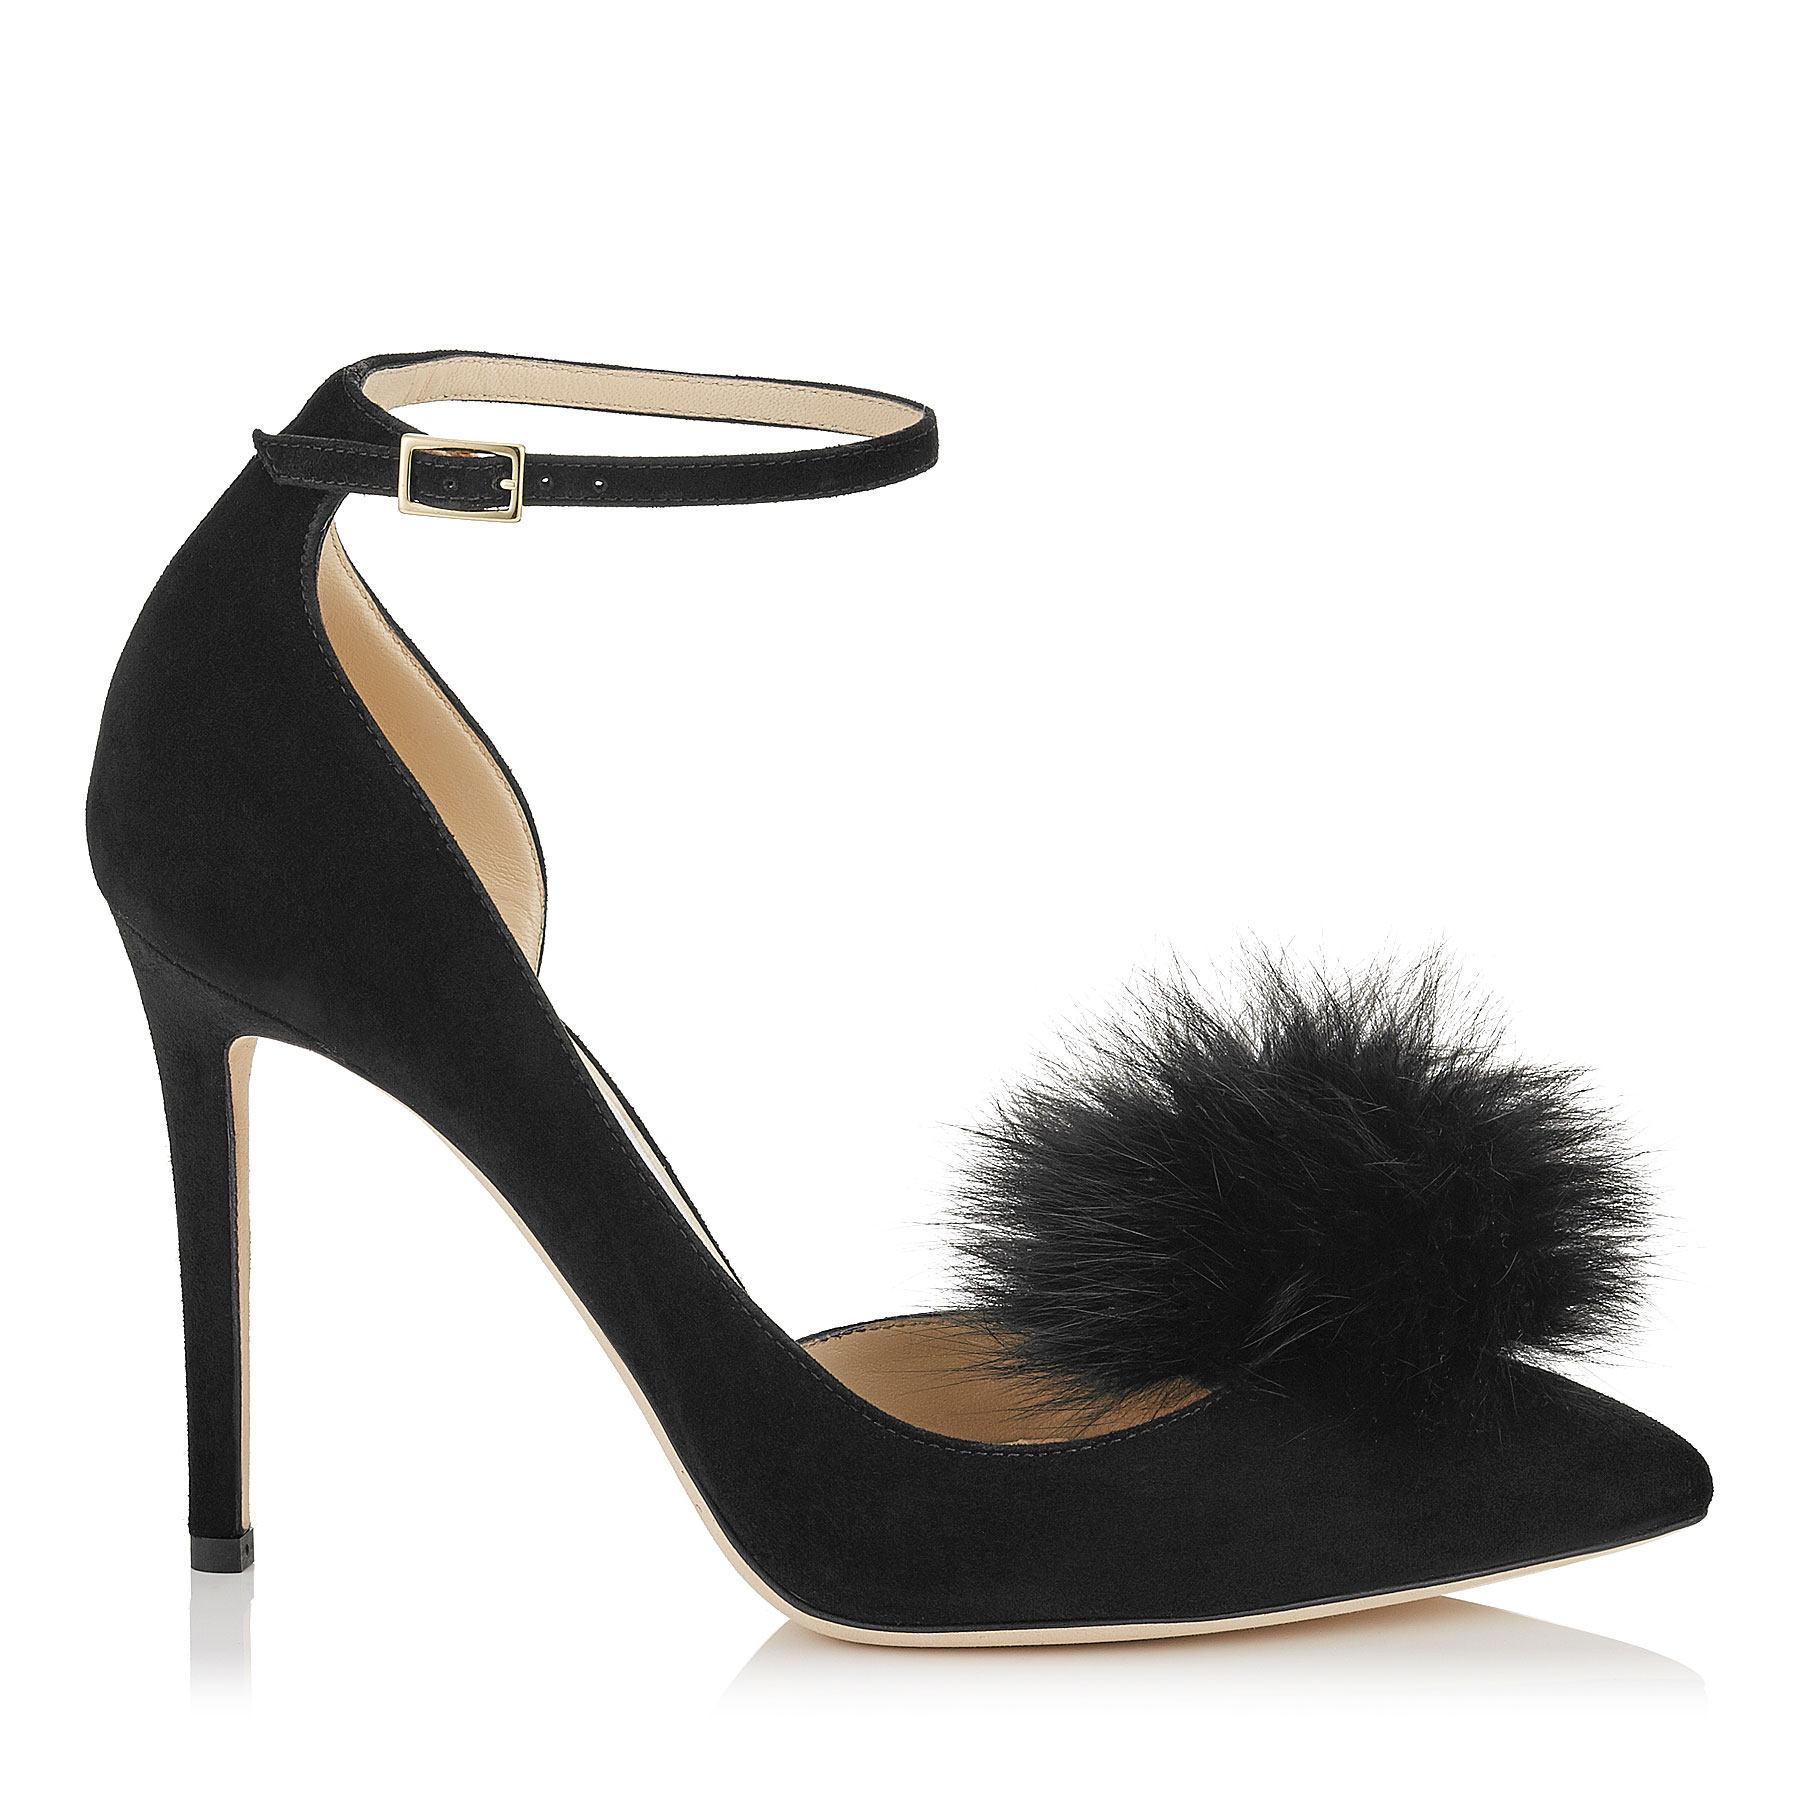 ROSA 100 Black Suede Pointy Toe Pumps with Clip on Pom Poms